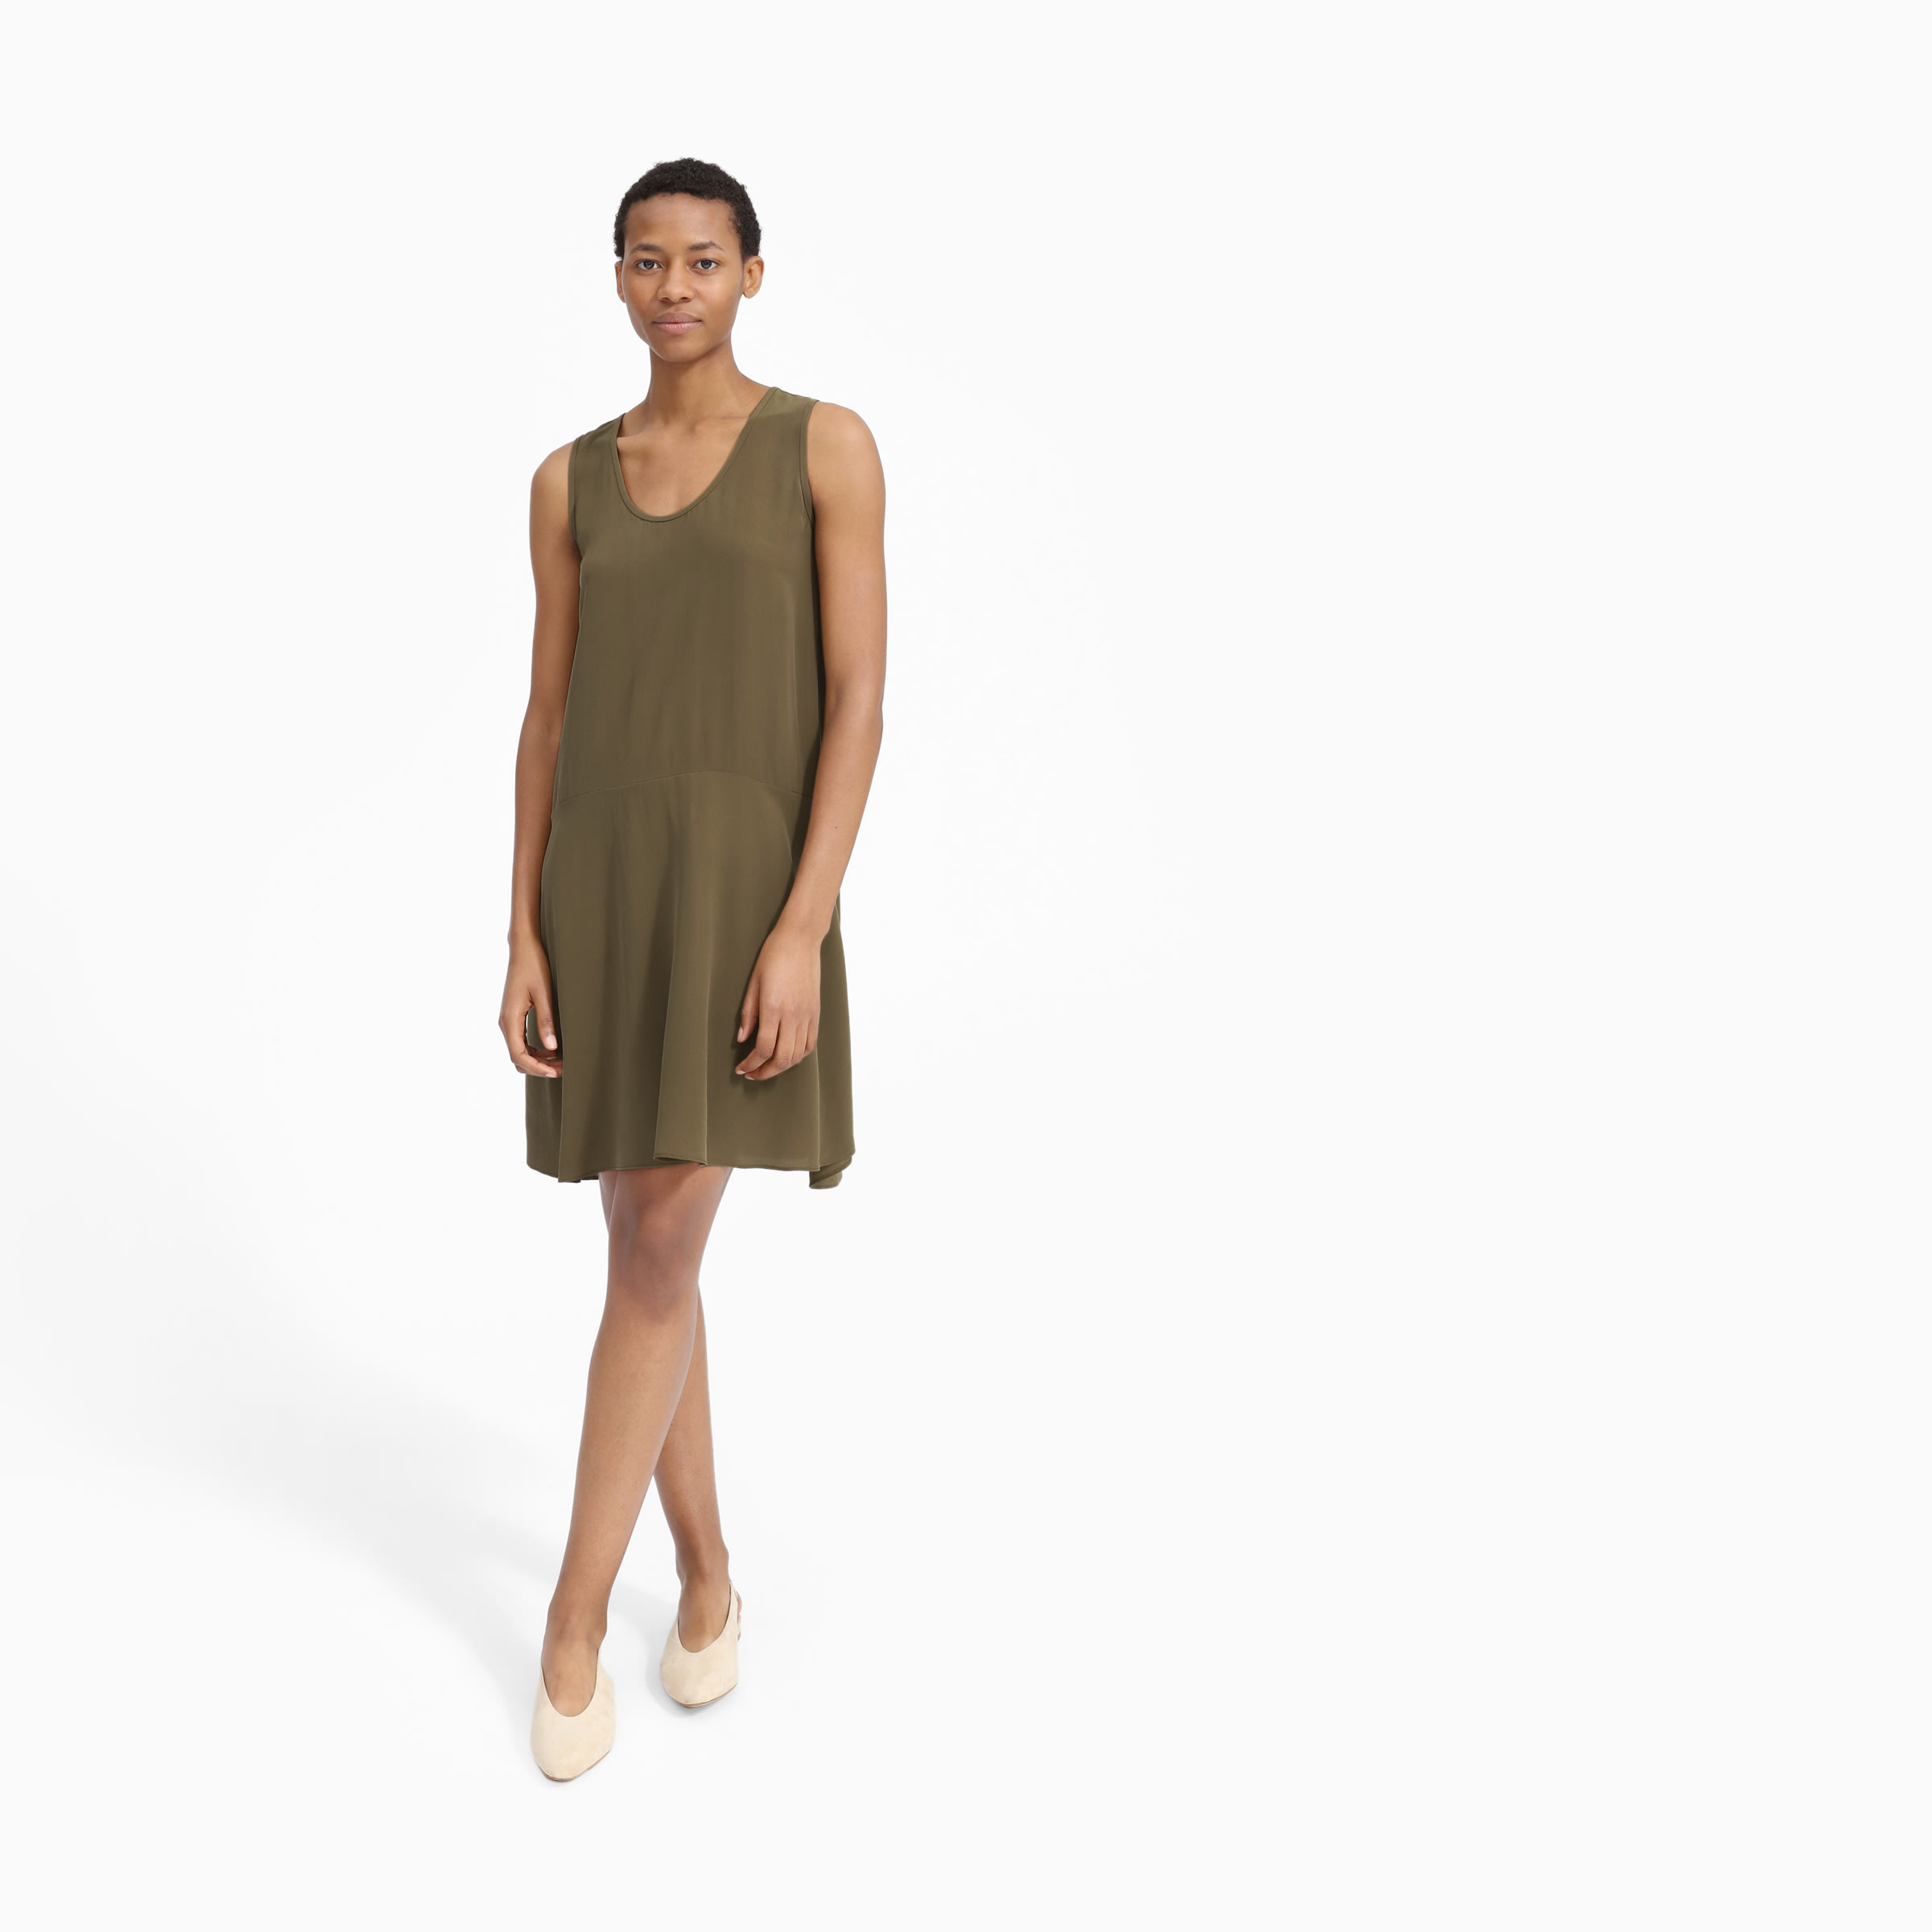 59ee251c58fd Women's Clean Silk Sleeveless Dress | Everlane